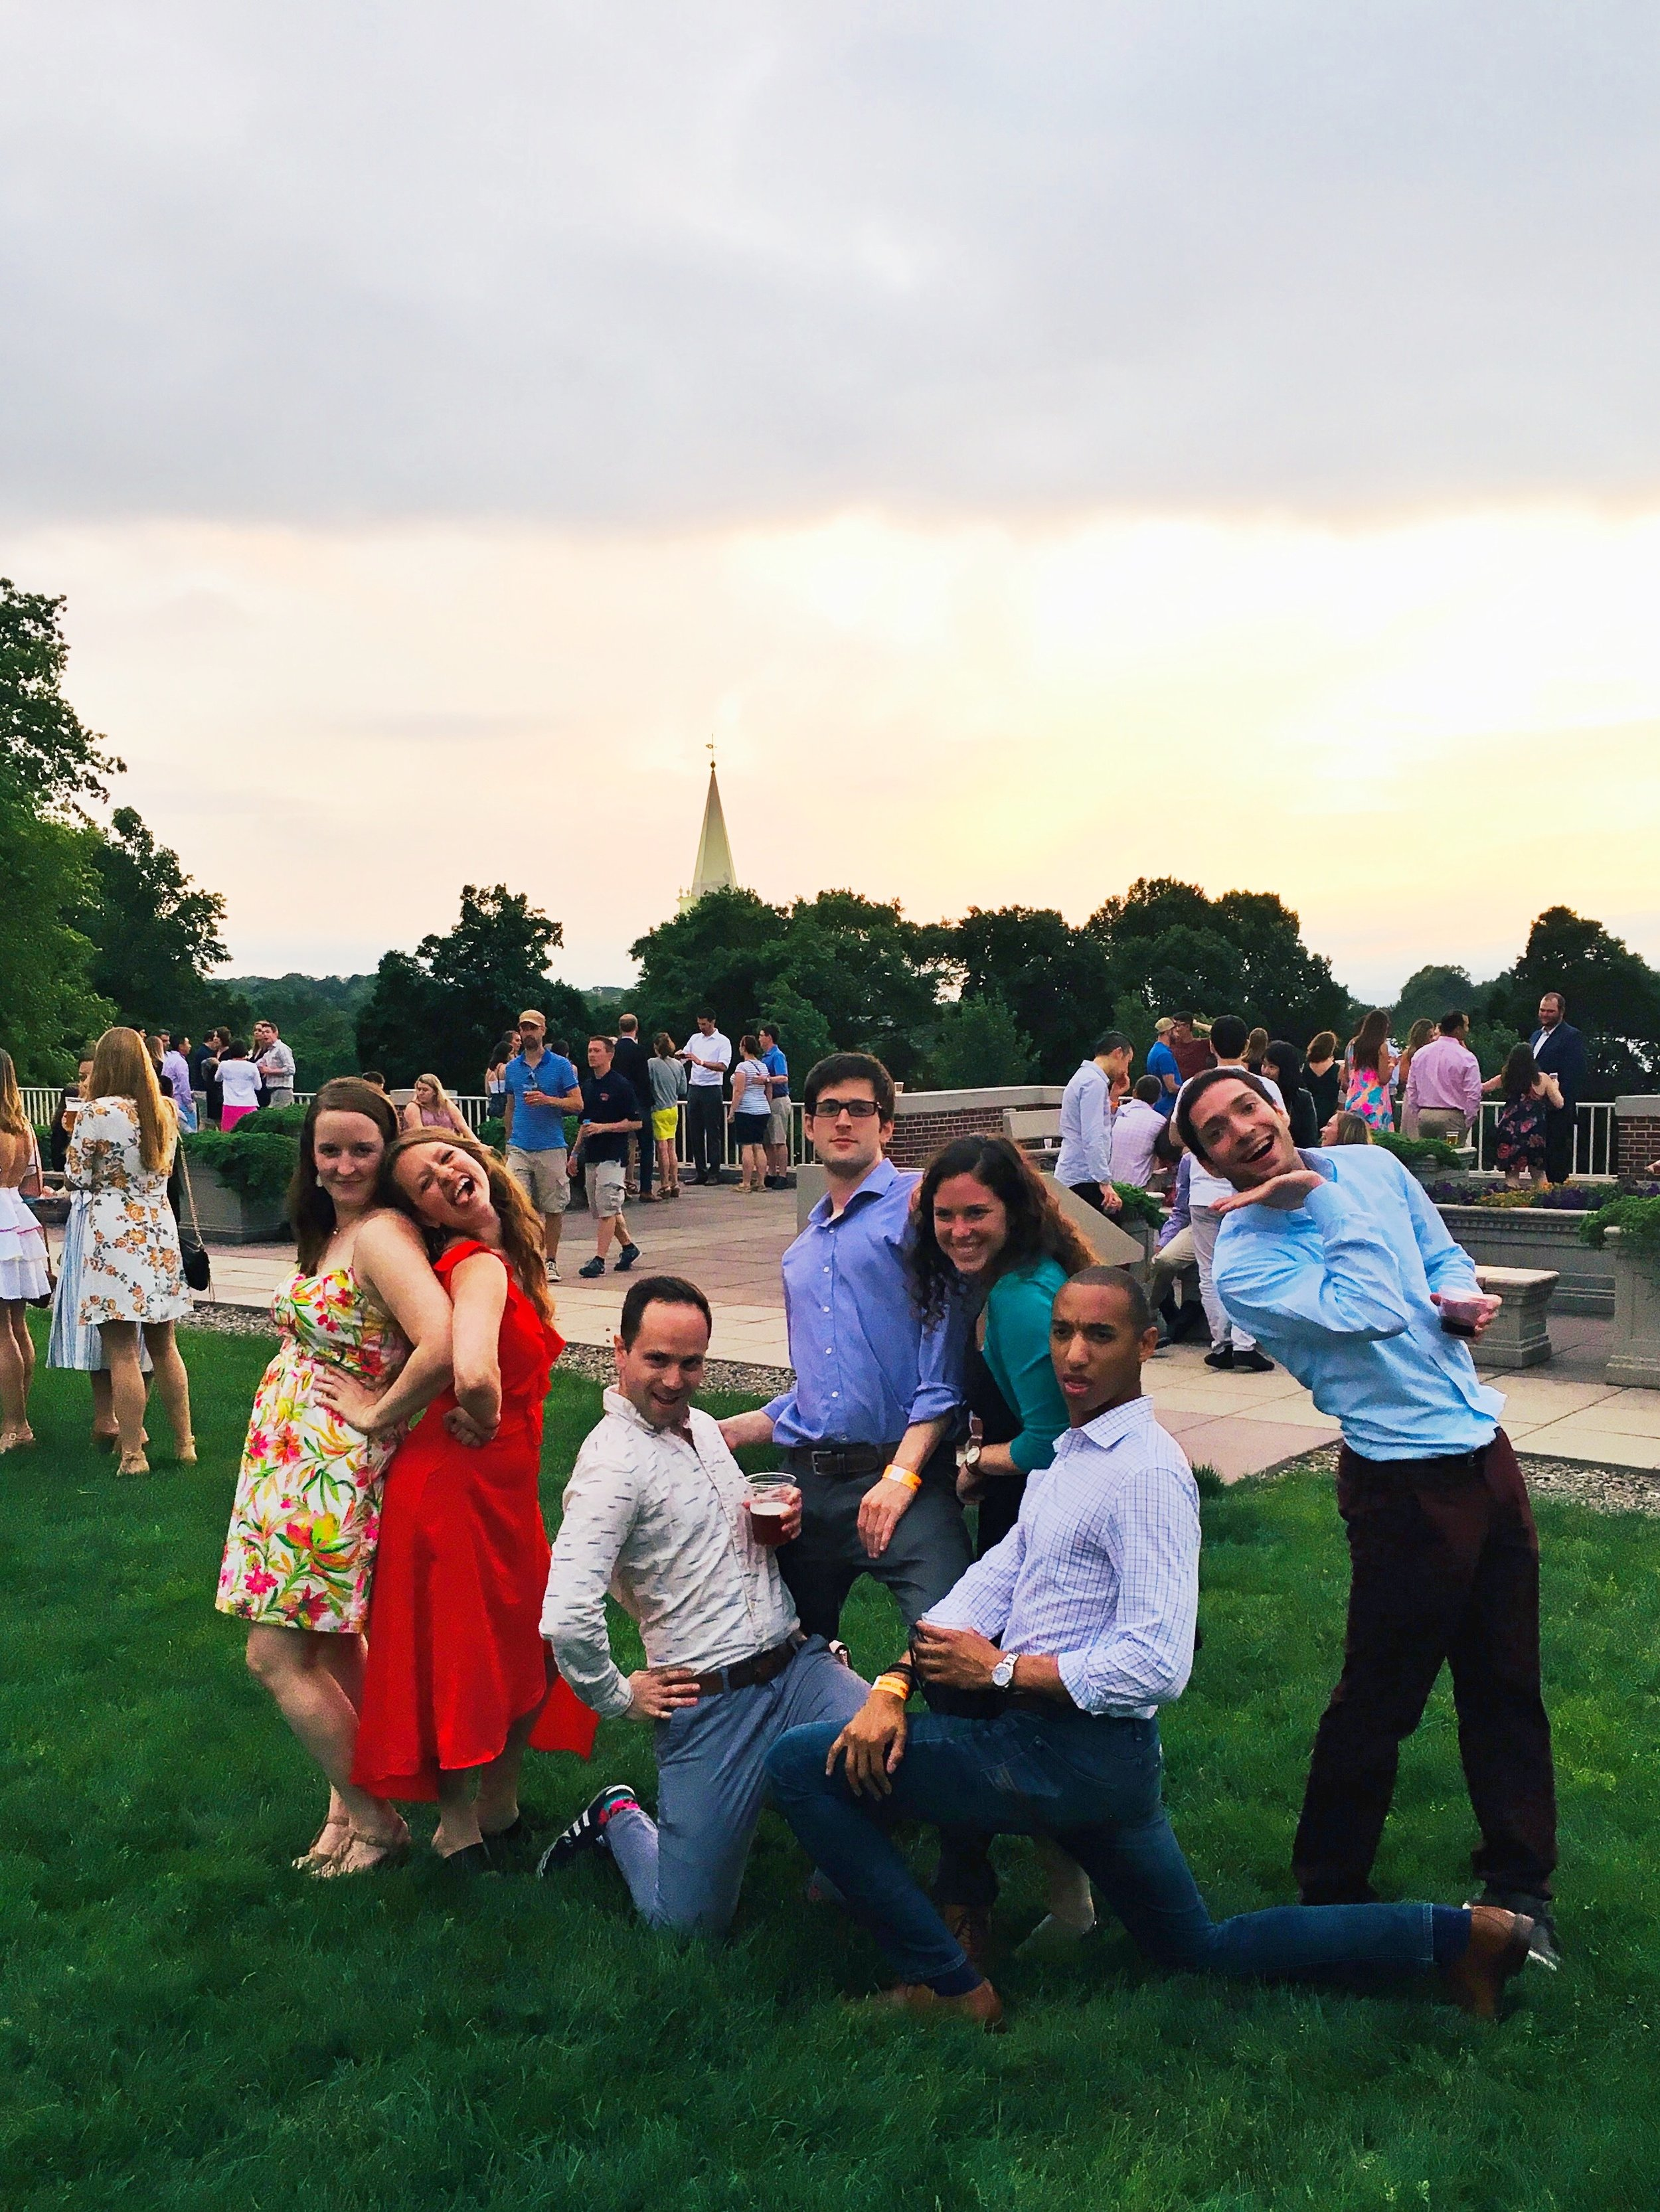 Total silliness with friends at my five year college reunion